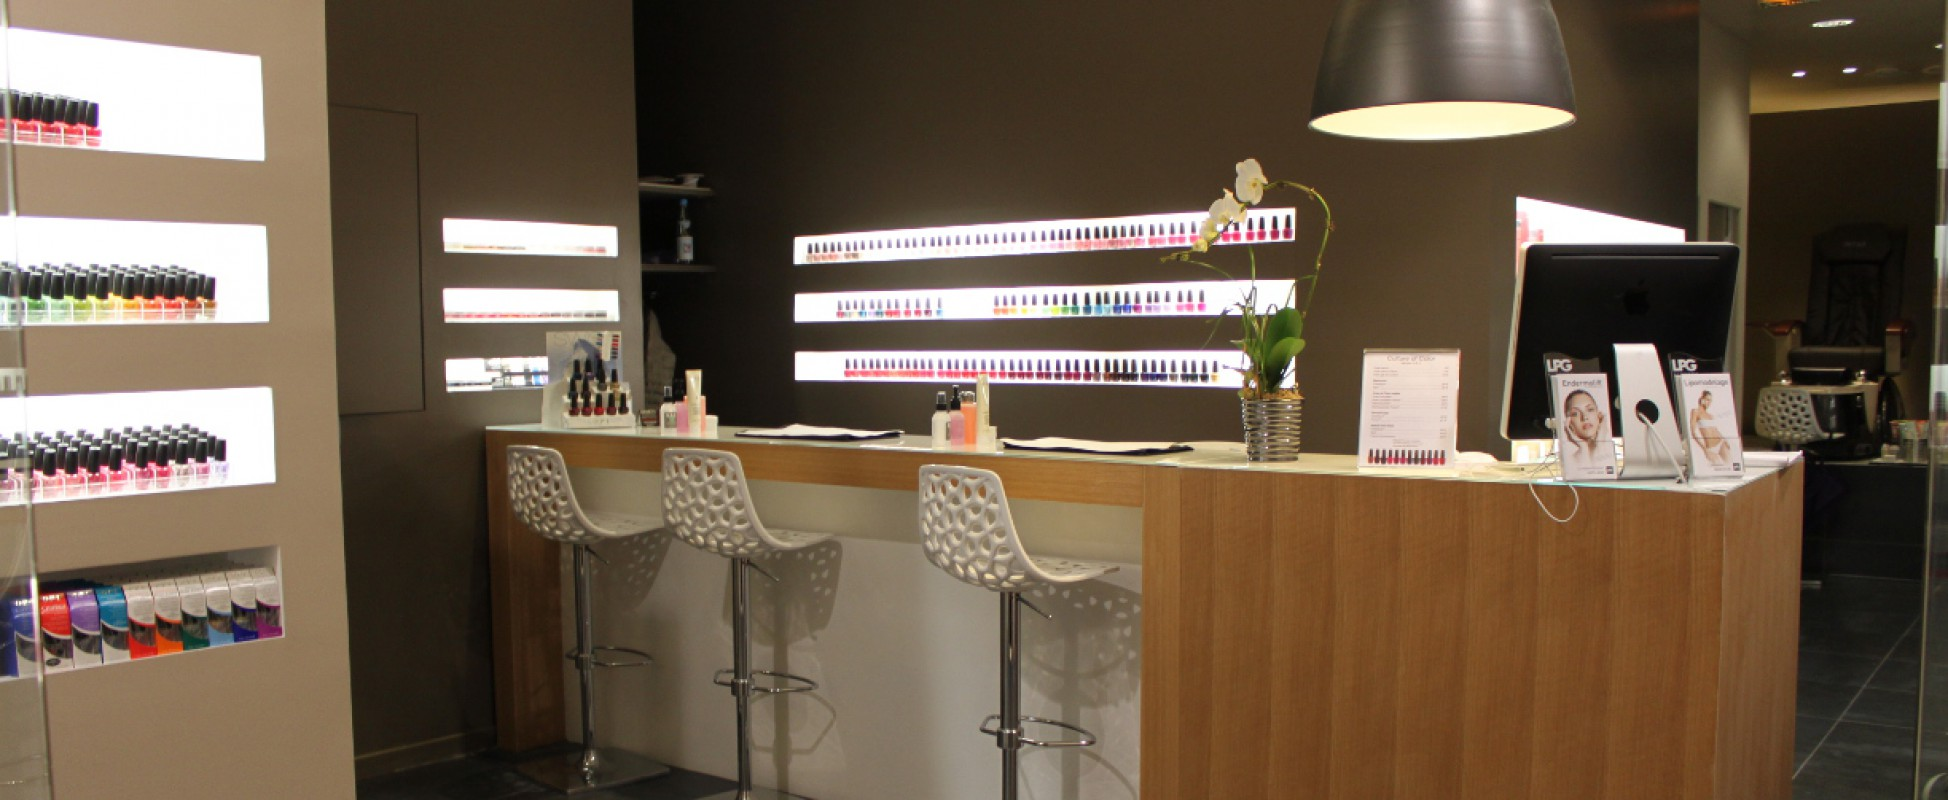 Carrelage Saint Germain En Laye colorforever saint-germain-en-laye bar � ongles opi et bar �